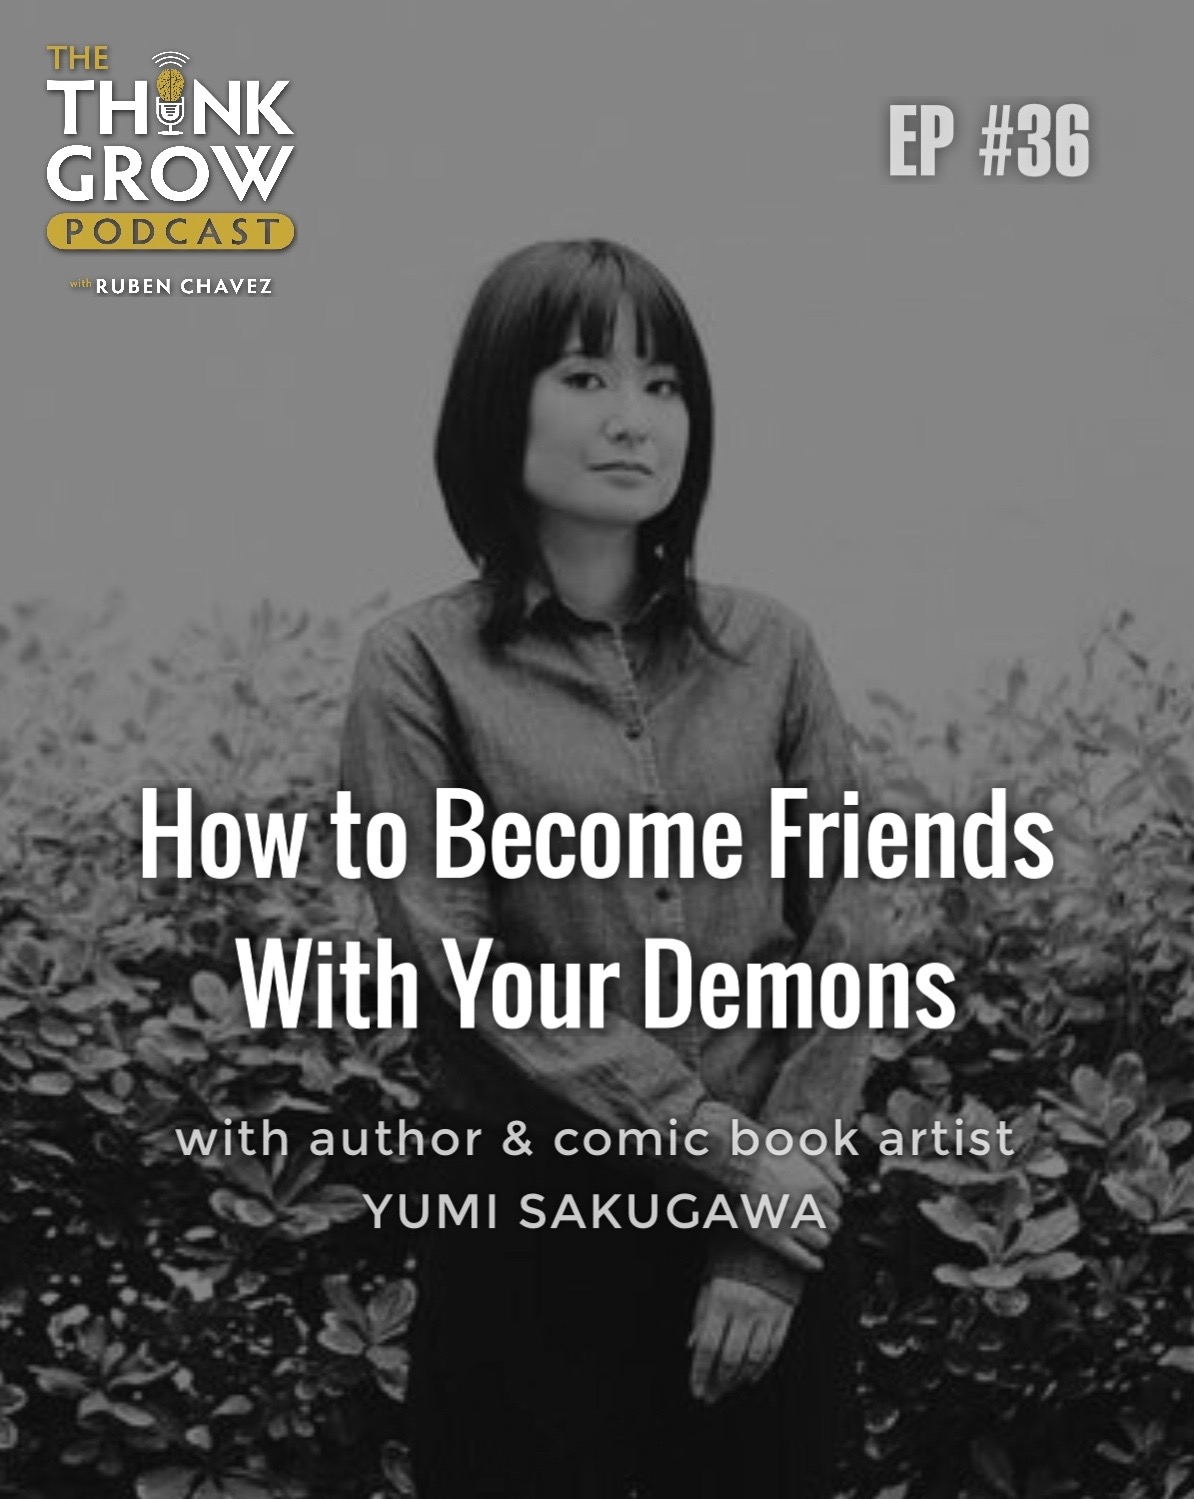 Yumi Sakugawa - How to Become Friends With Your Demons.JPG